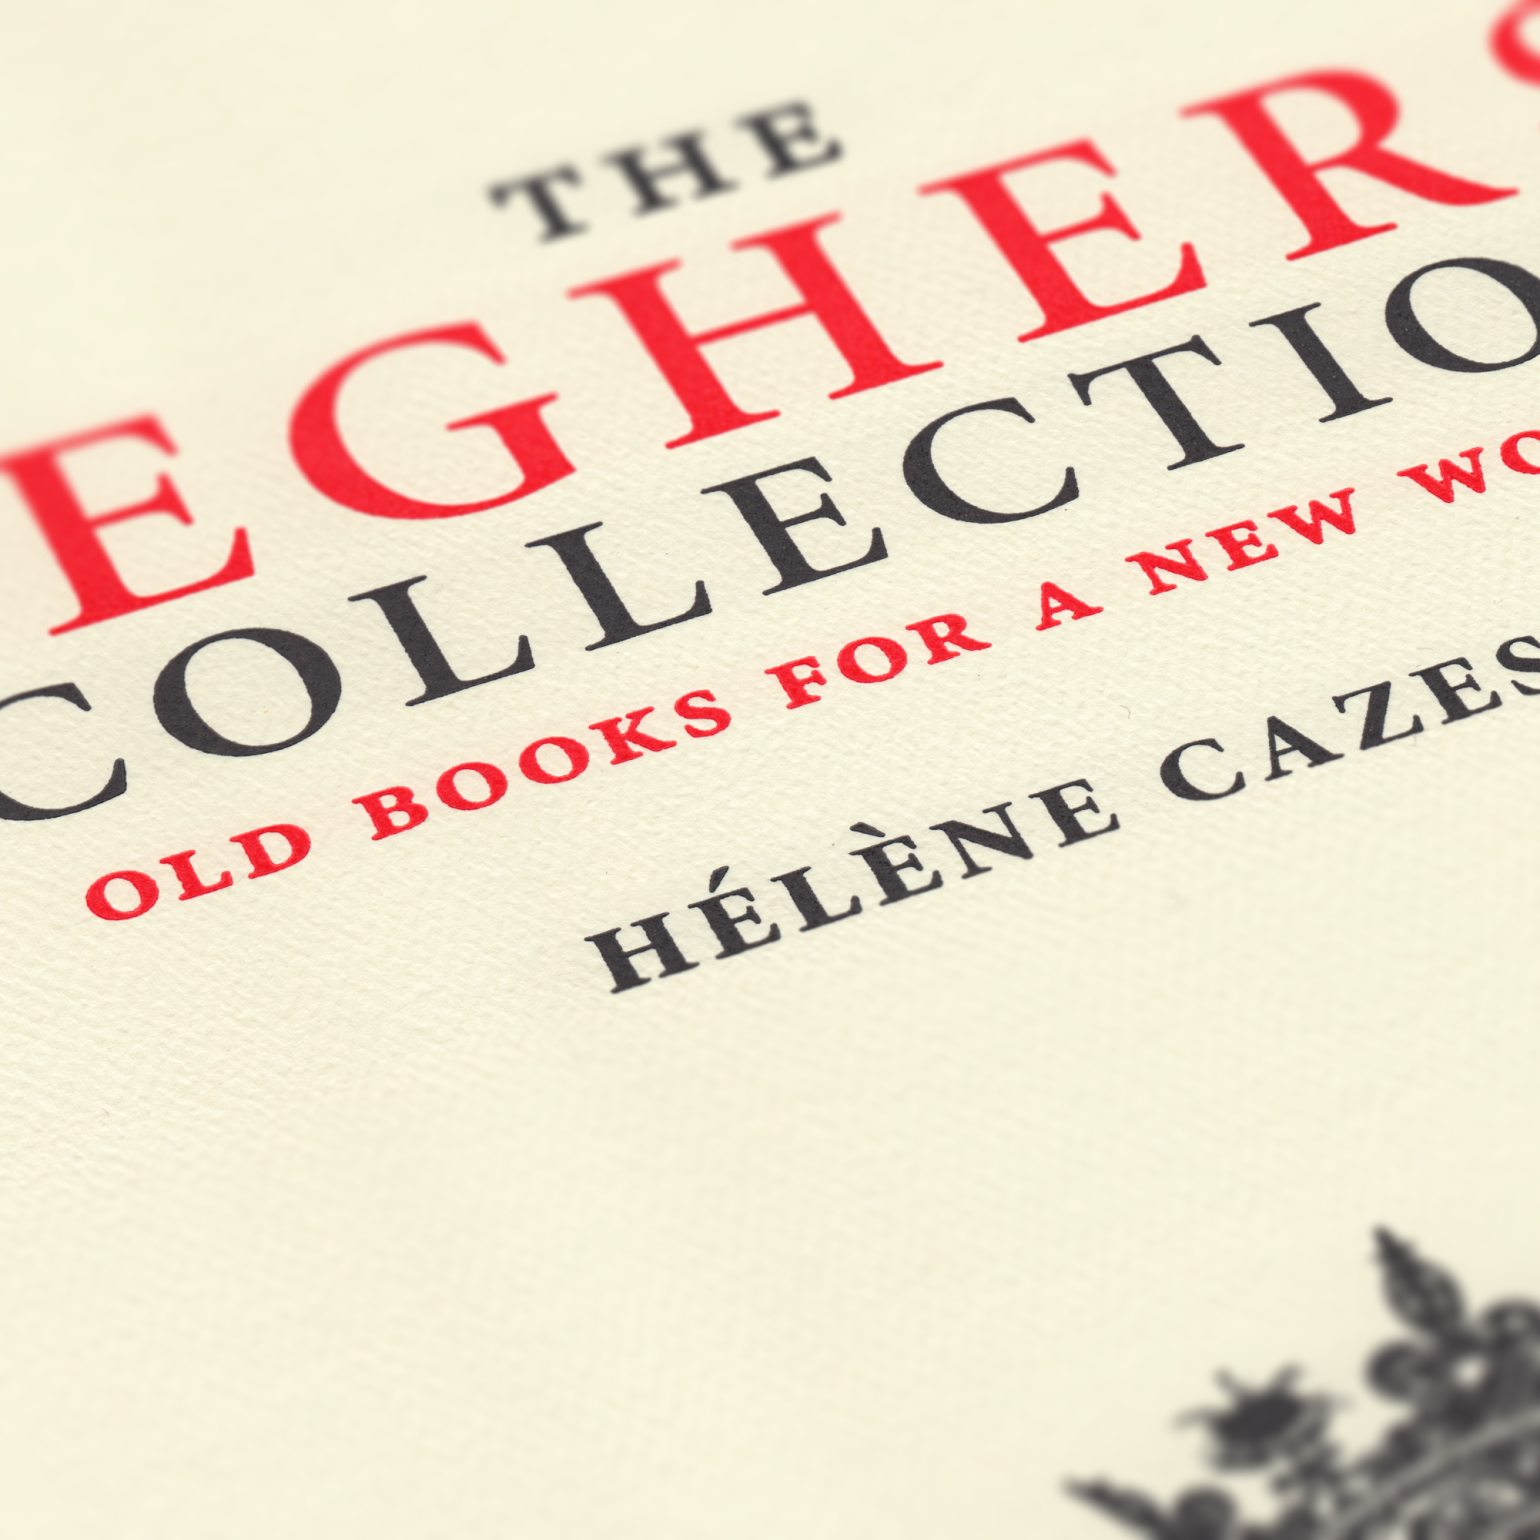 The Seghers Collection, cover detail